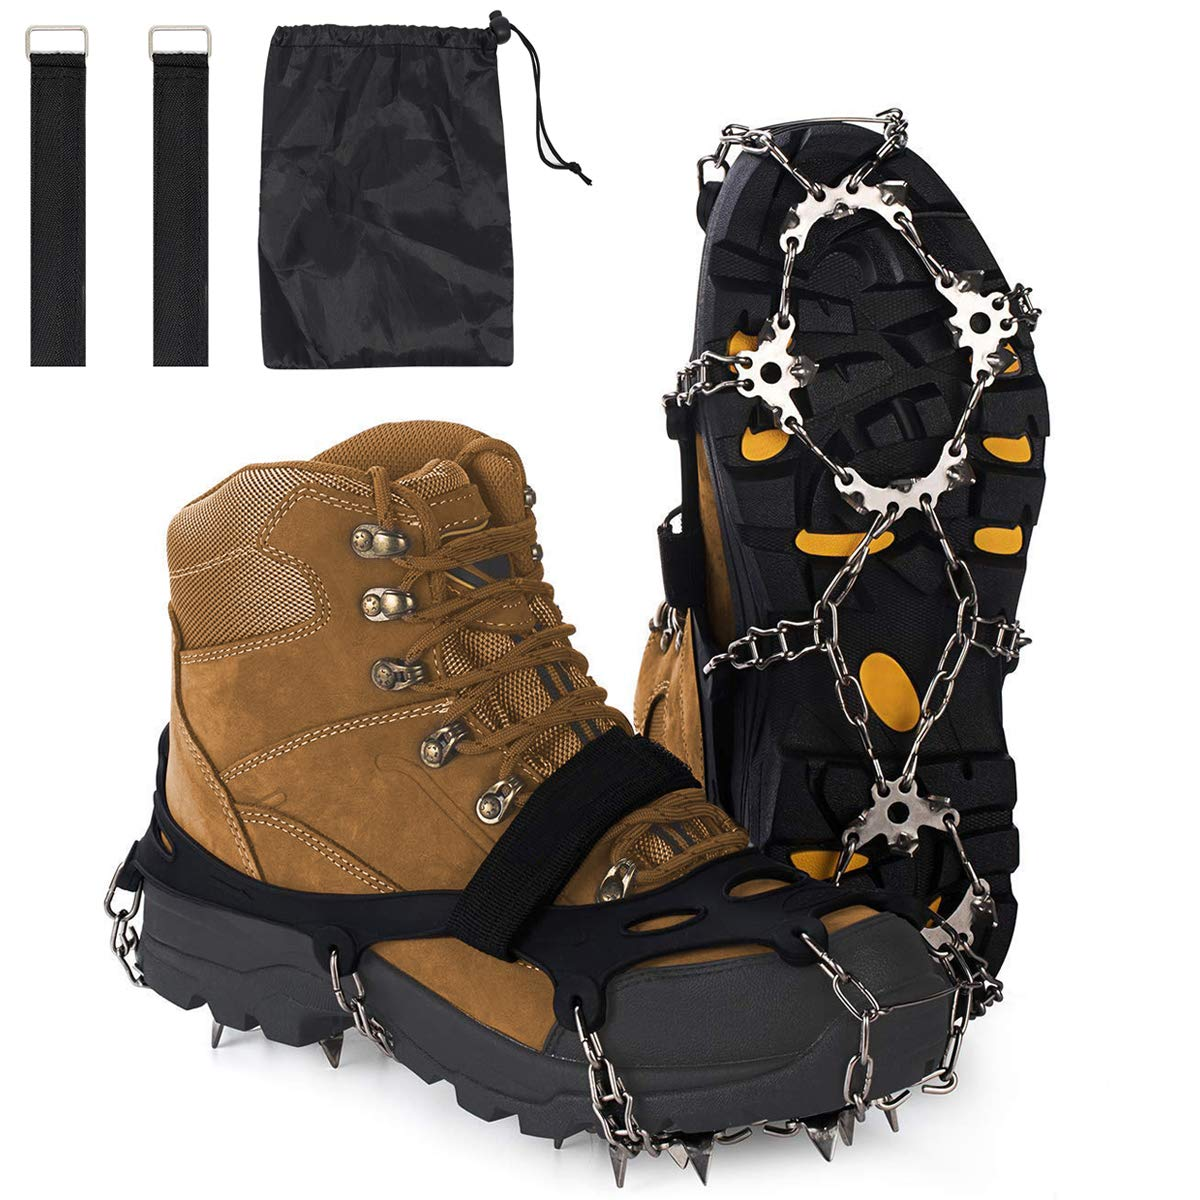 ENJOY OUTDOOR Ice Cleats Crampons and Tread Ice Gripper for Walking or Hiking on Snow and Ice,Cleat Over Shoe,Boot Anti Slip 10 Steel Crampons Slip-on Stretch Footwear